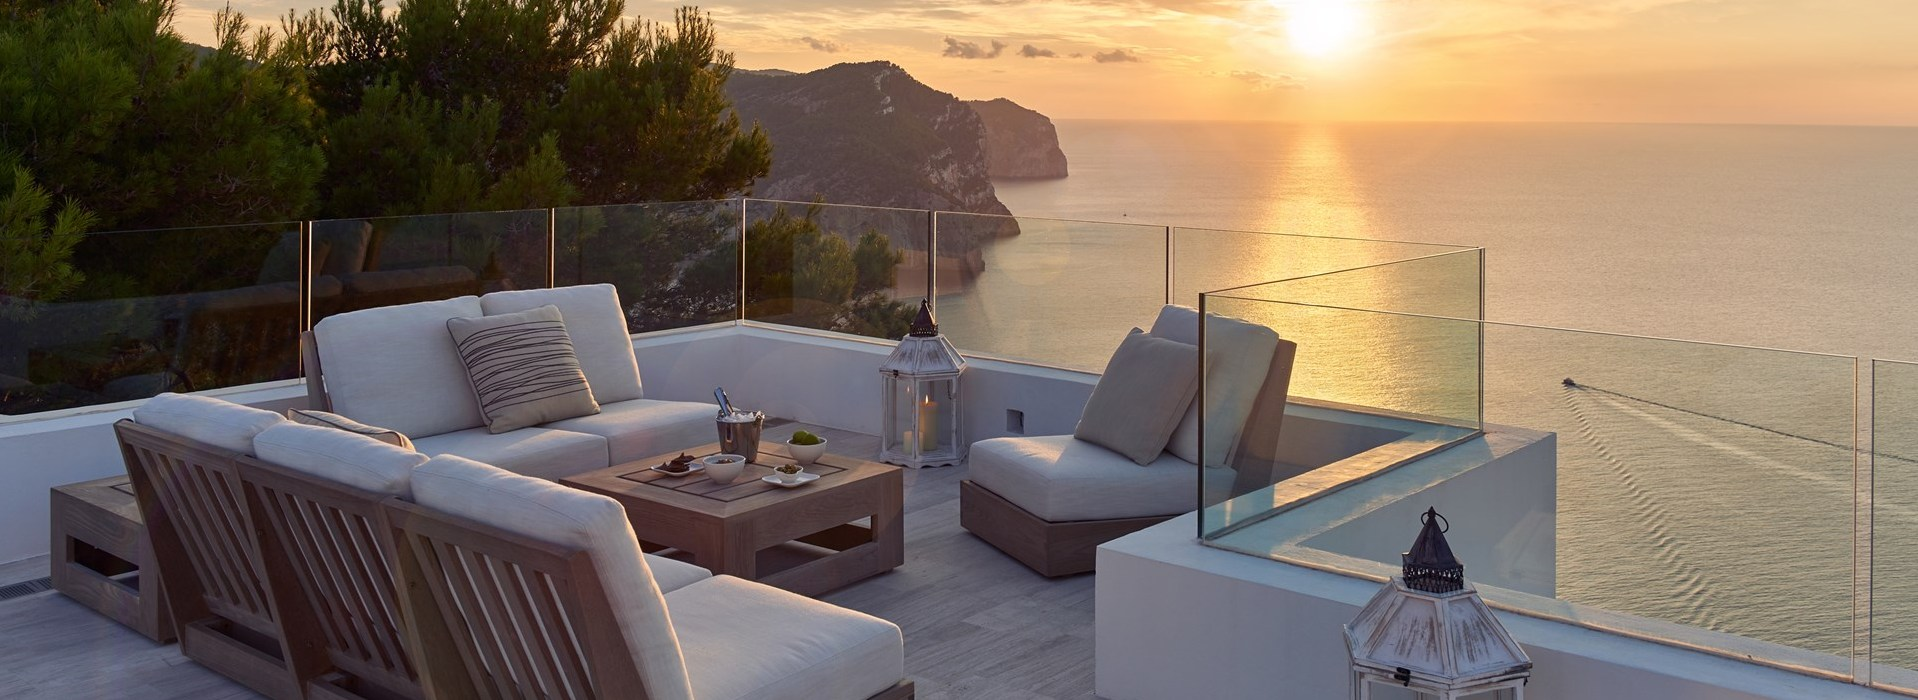 luxury-mediterranean-family-villas